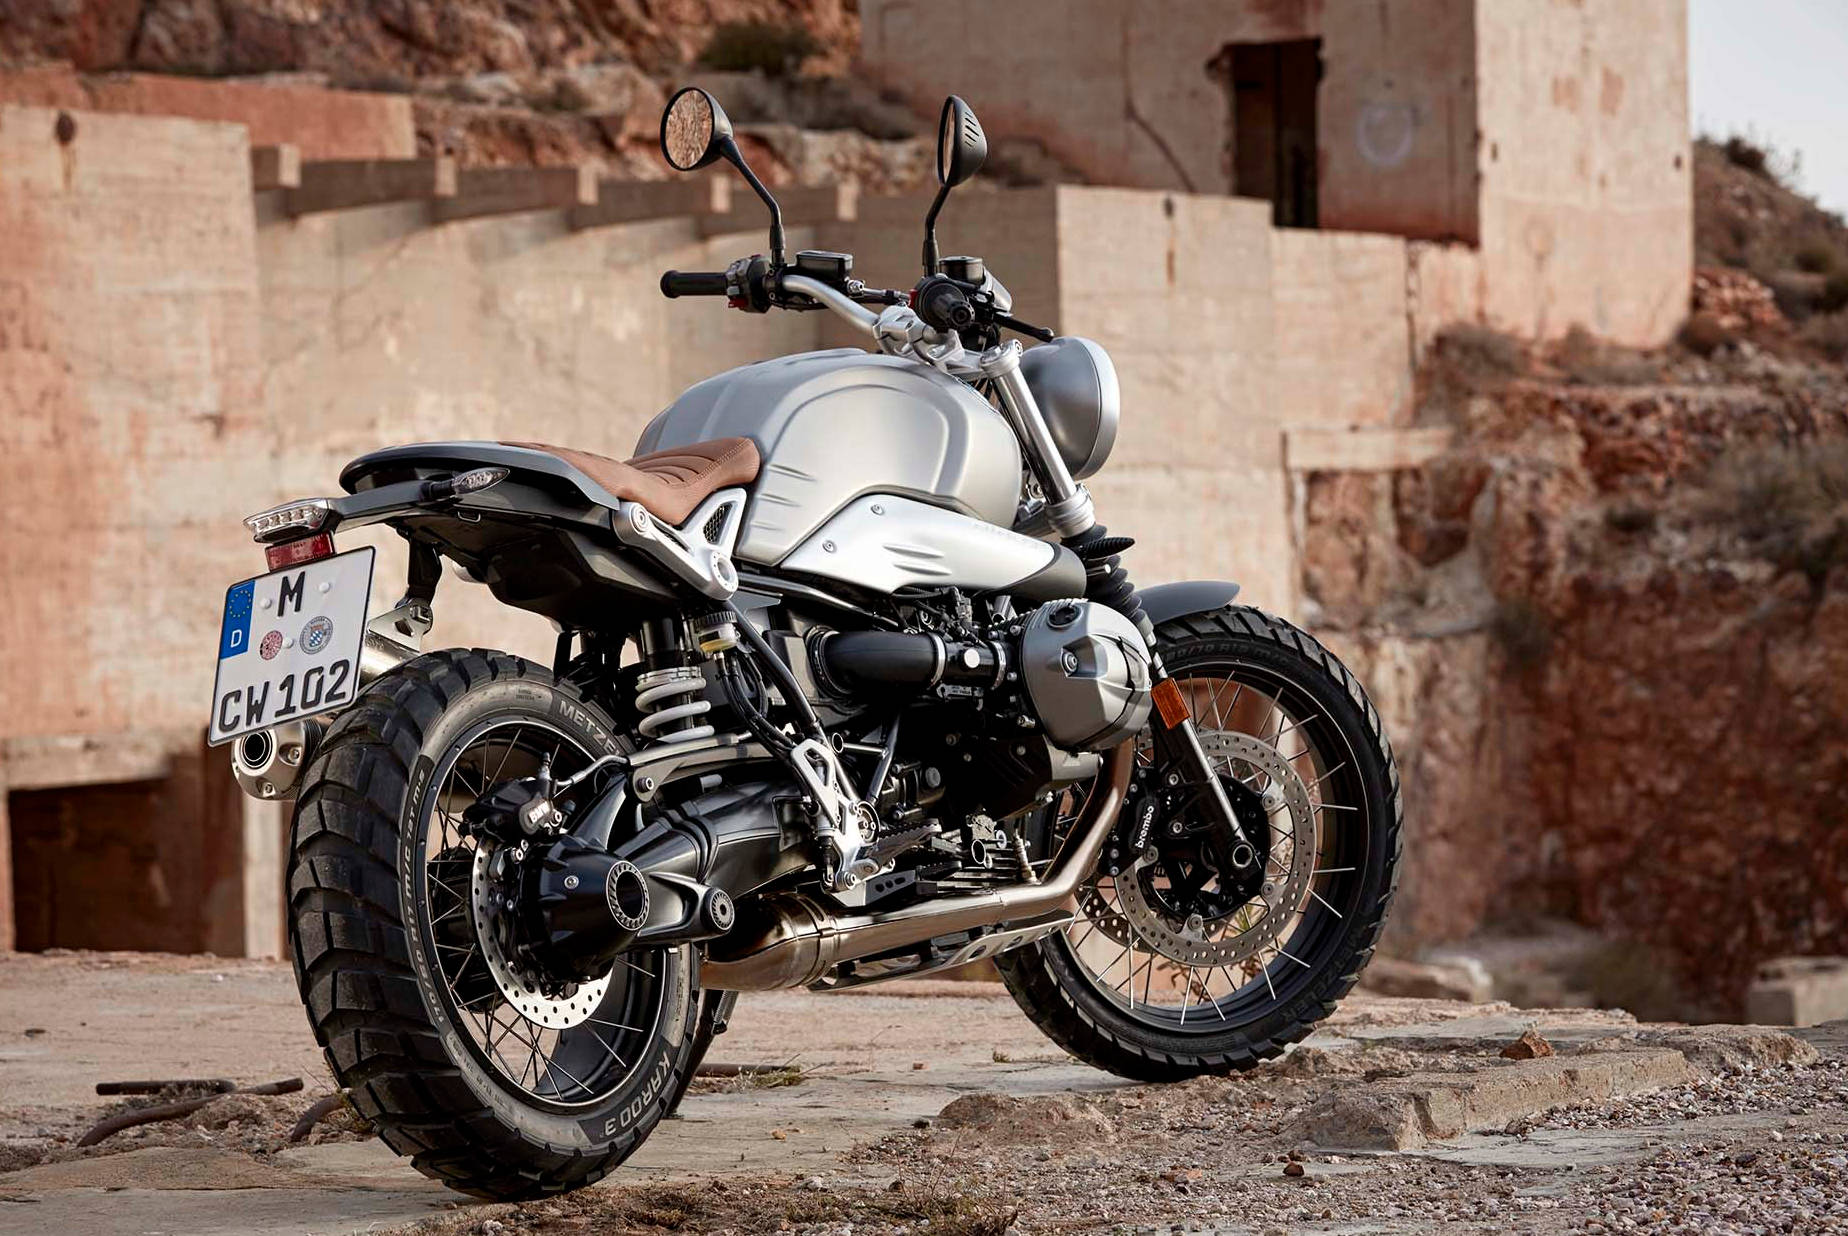 bmw unveils new r ninet scrambler motorcycle news editorials product. Black Bedroom Furniture Sets. Home Design Ideas